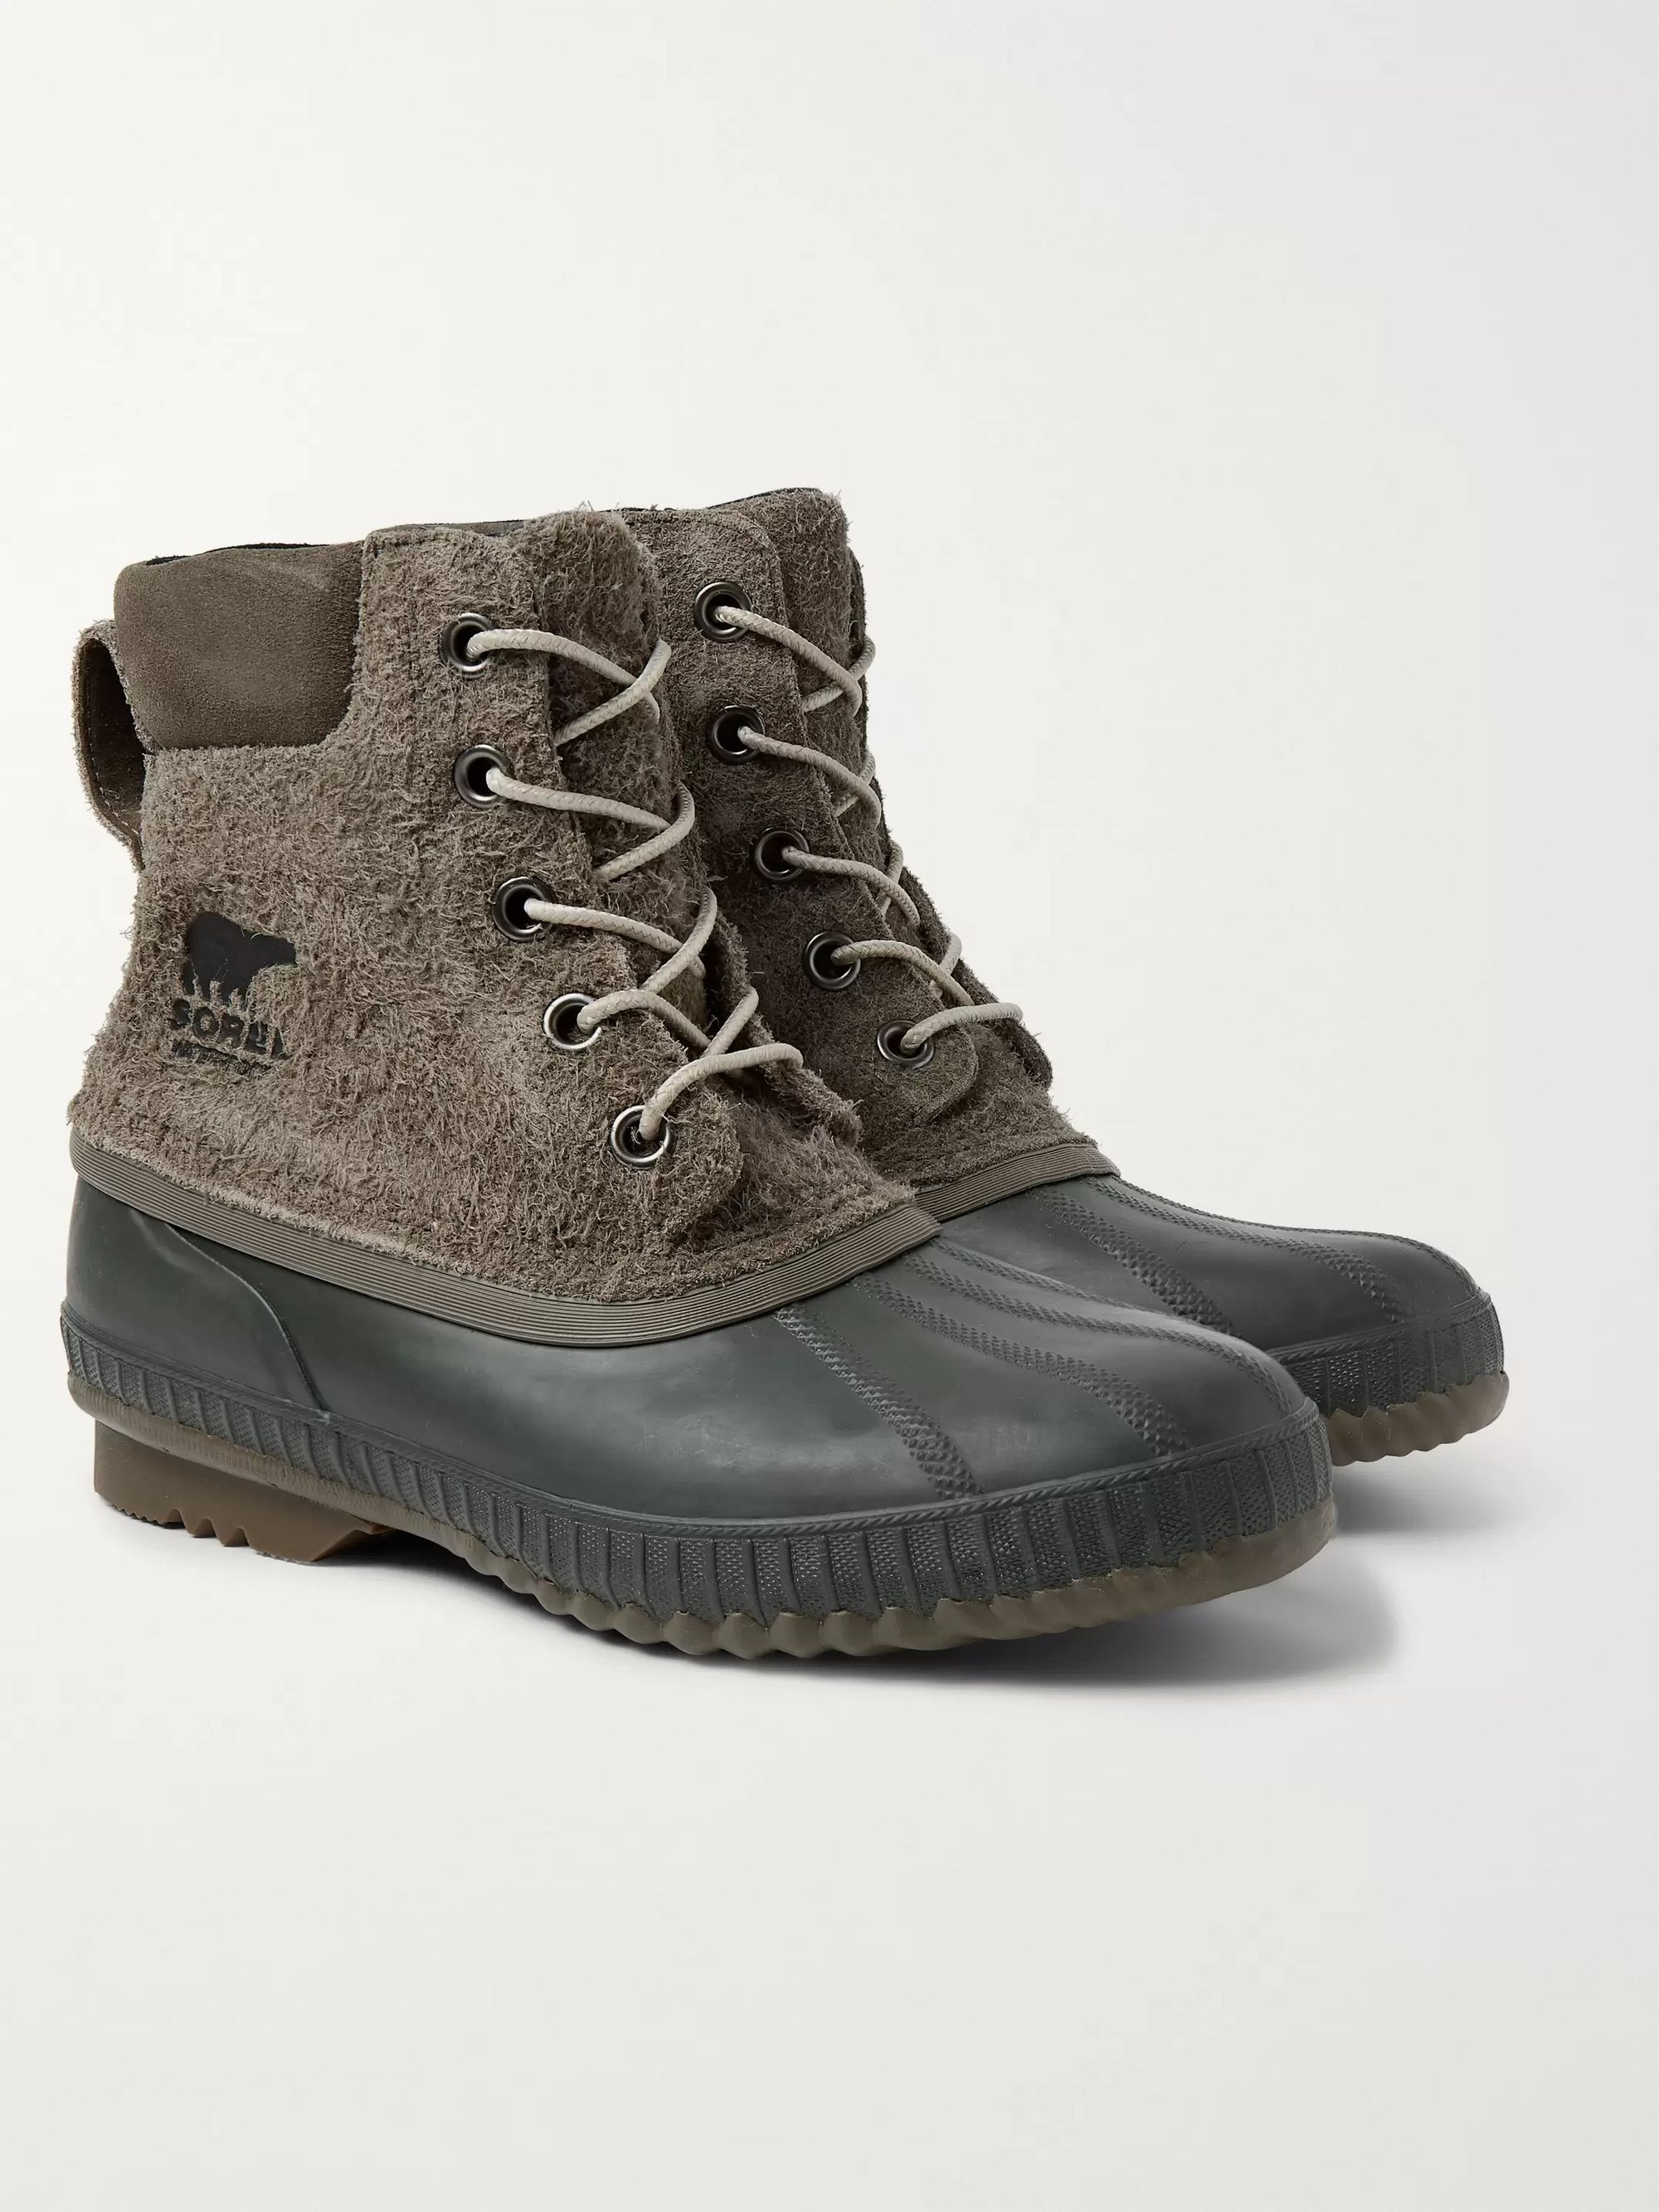 Sorel Cheyanne II Waterproof Textured-Suede and Rubber Boots